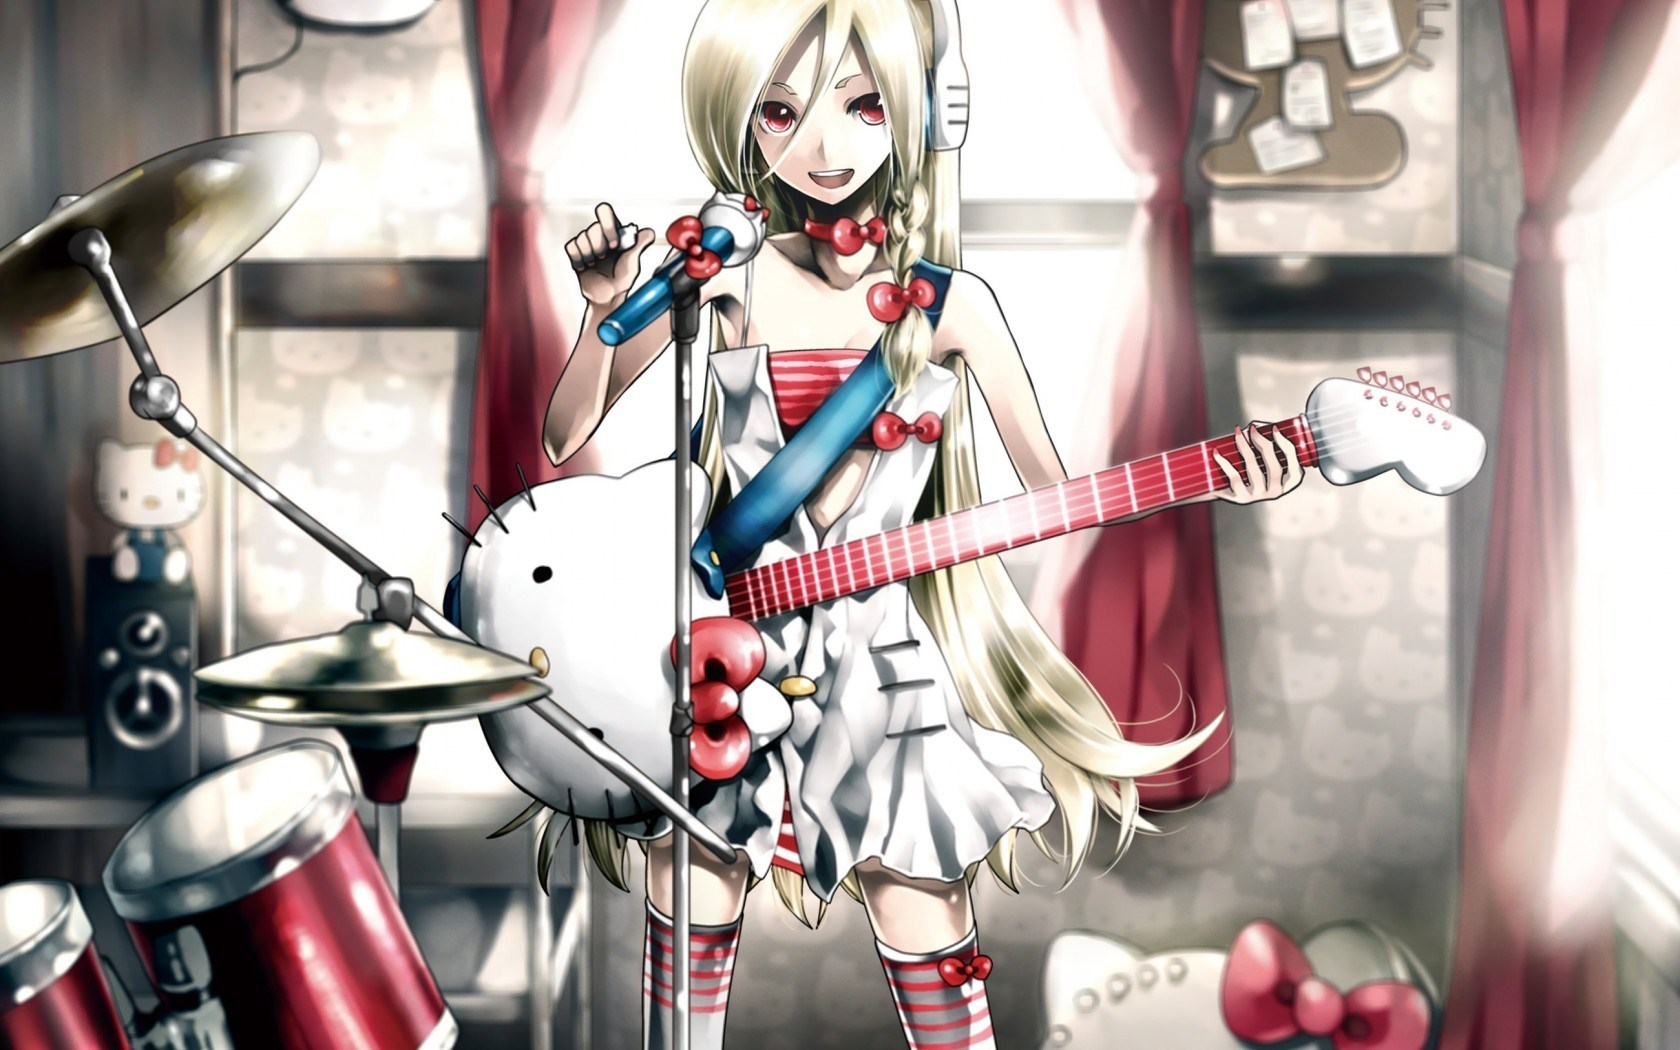 Cool Wallpaper Music Anime - art-blonde-girl-hello-kitty-guitar-music-anime-1  2018_446960.jpg